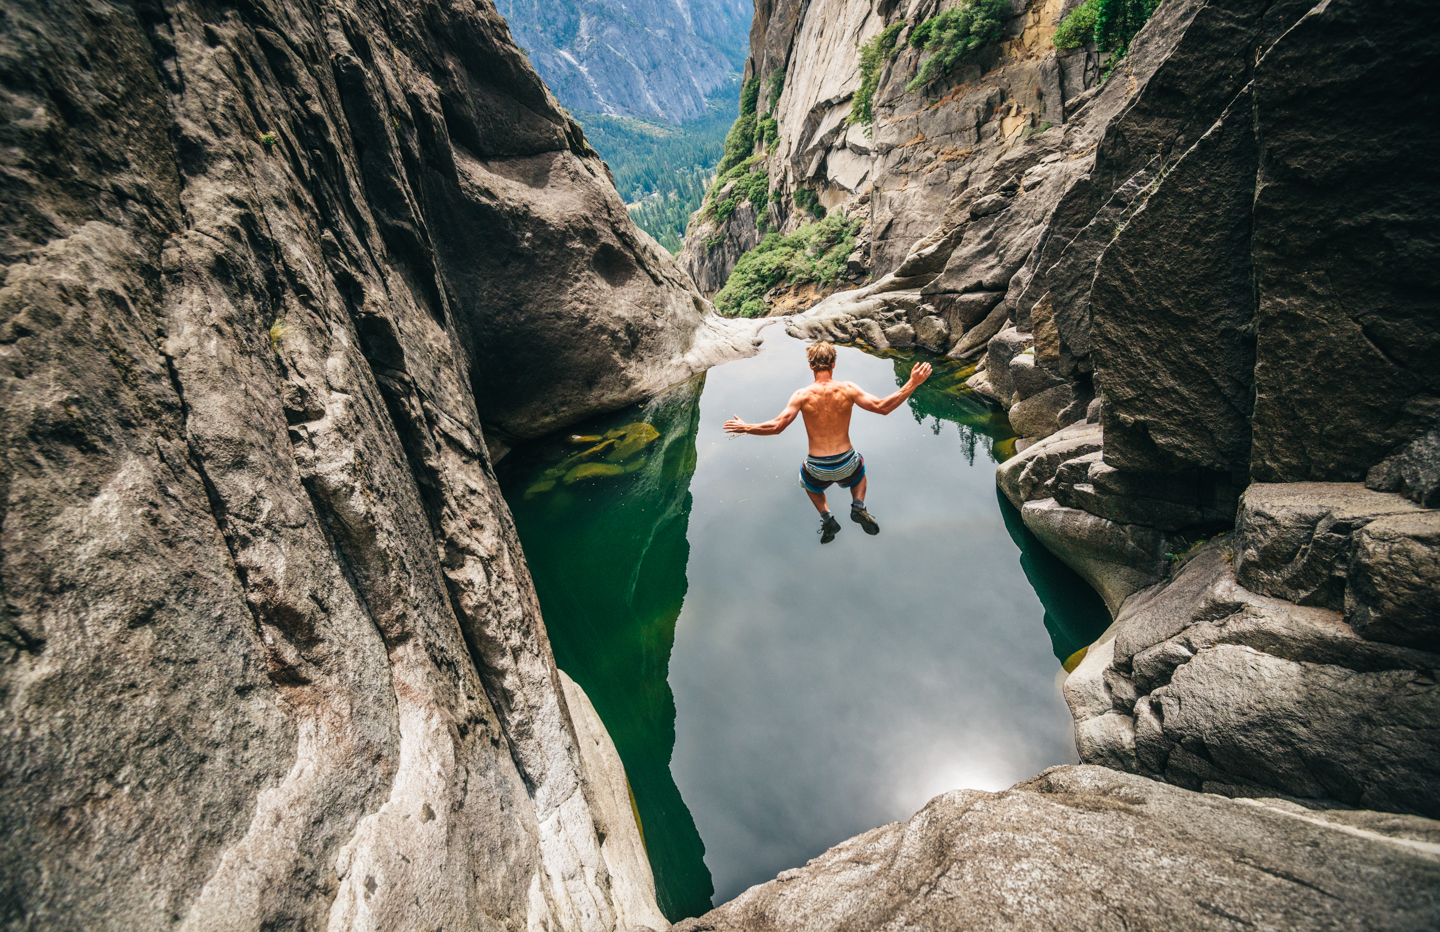 S17_PHOTO RIGHTS EXPIRE March 8, 2018: Trevor Hobbs takes a leap in Yosemite National Park.